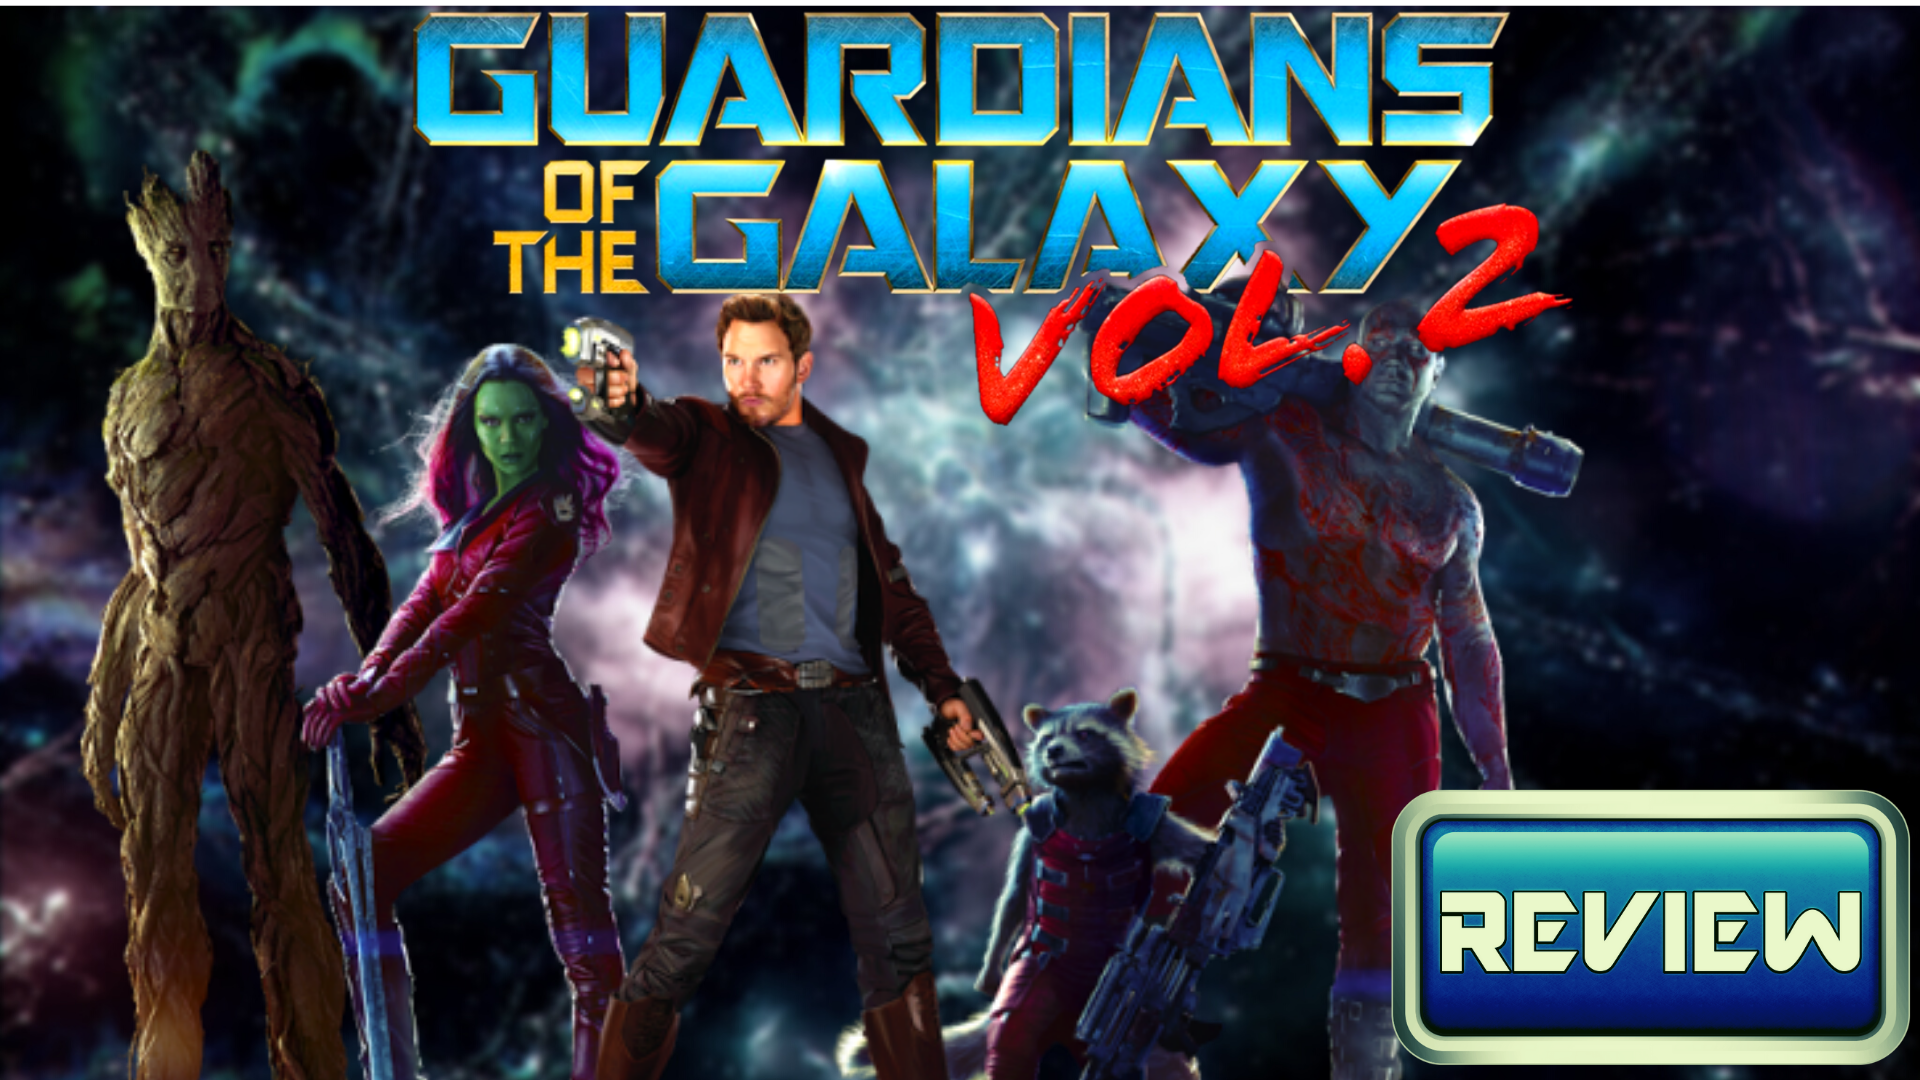 Guardians Of The Galaxy Vol 2 2017 Mini Review The Analytic Critic By Kyle Wiseman Marvel Cinematic Universe Reviews Medium